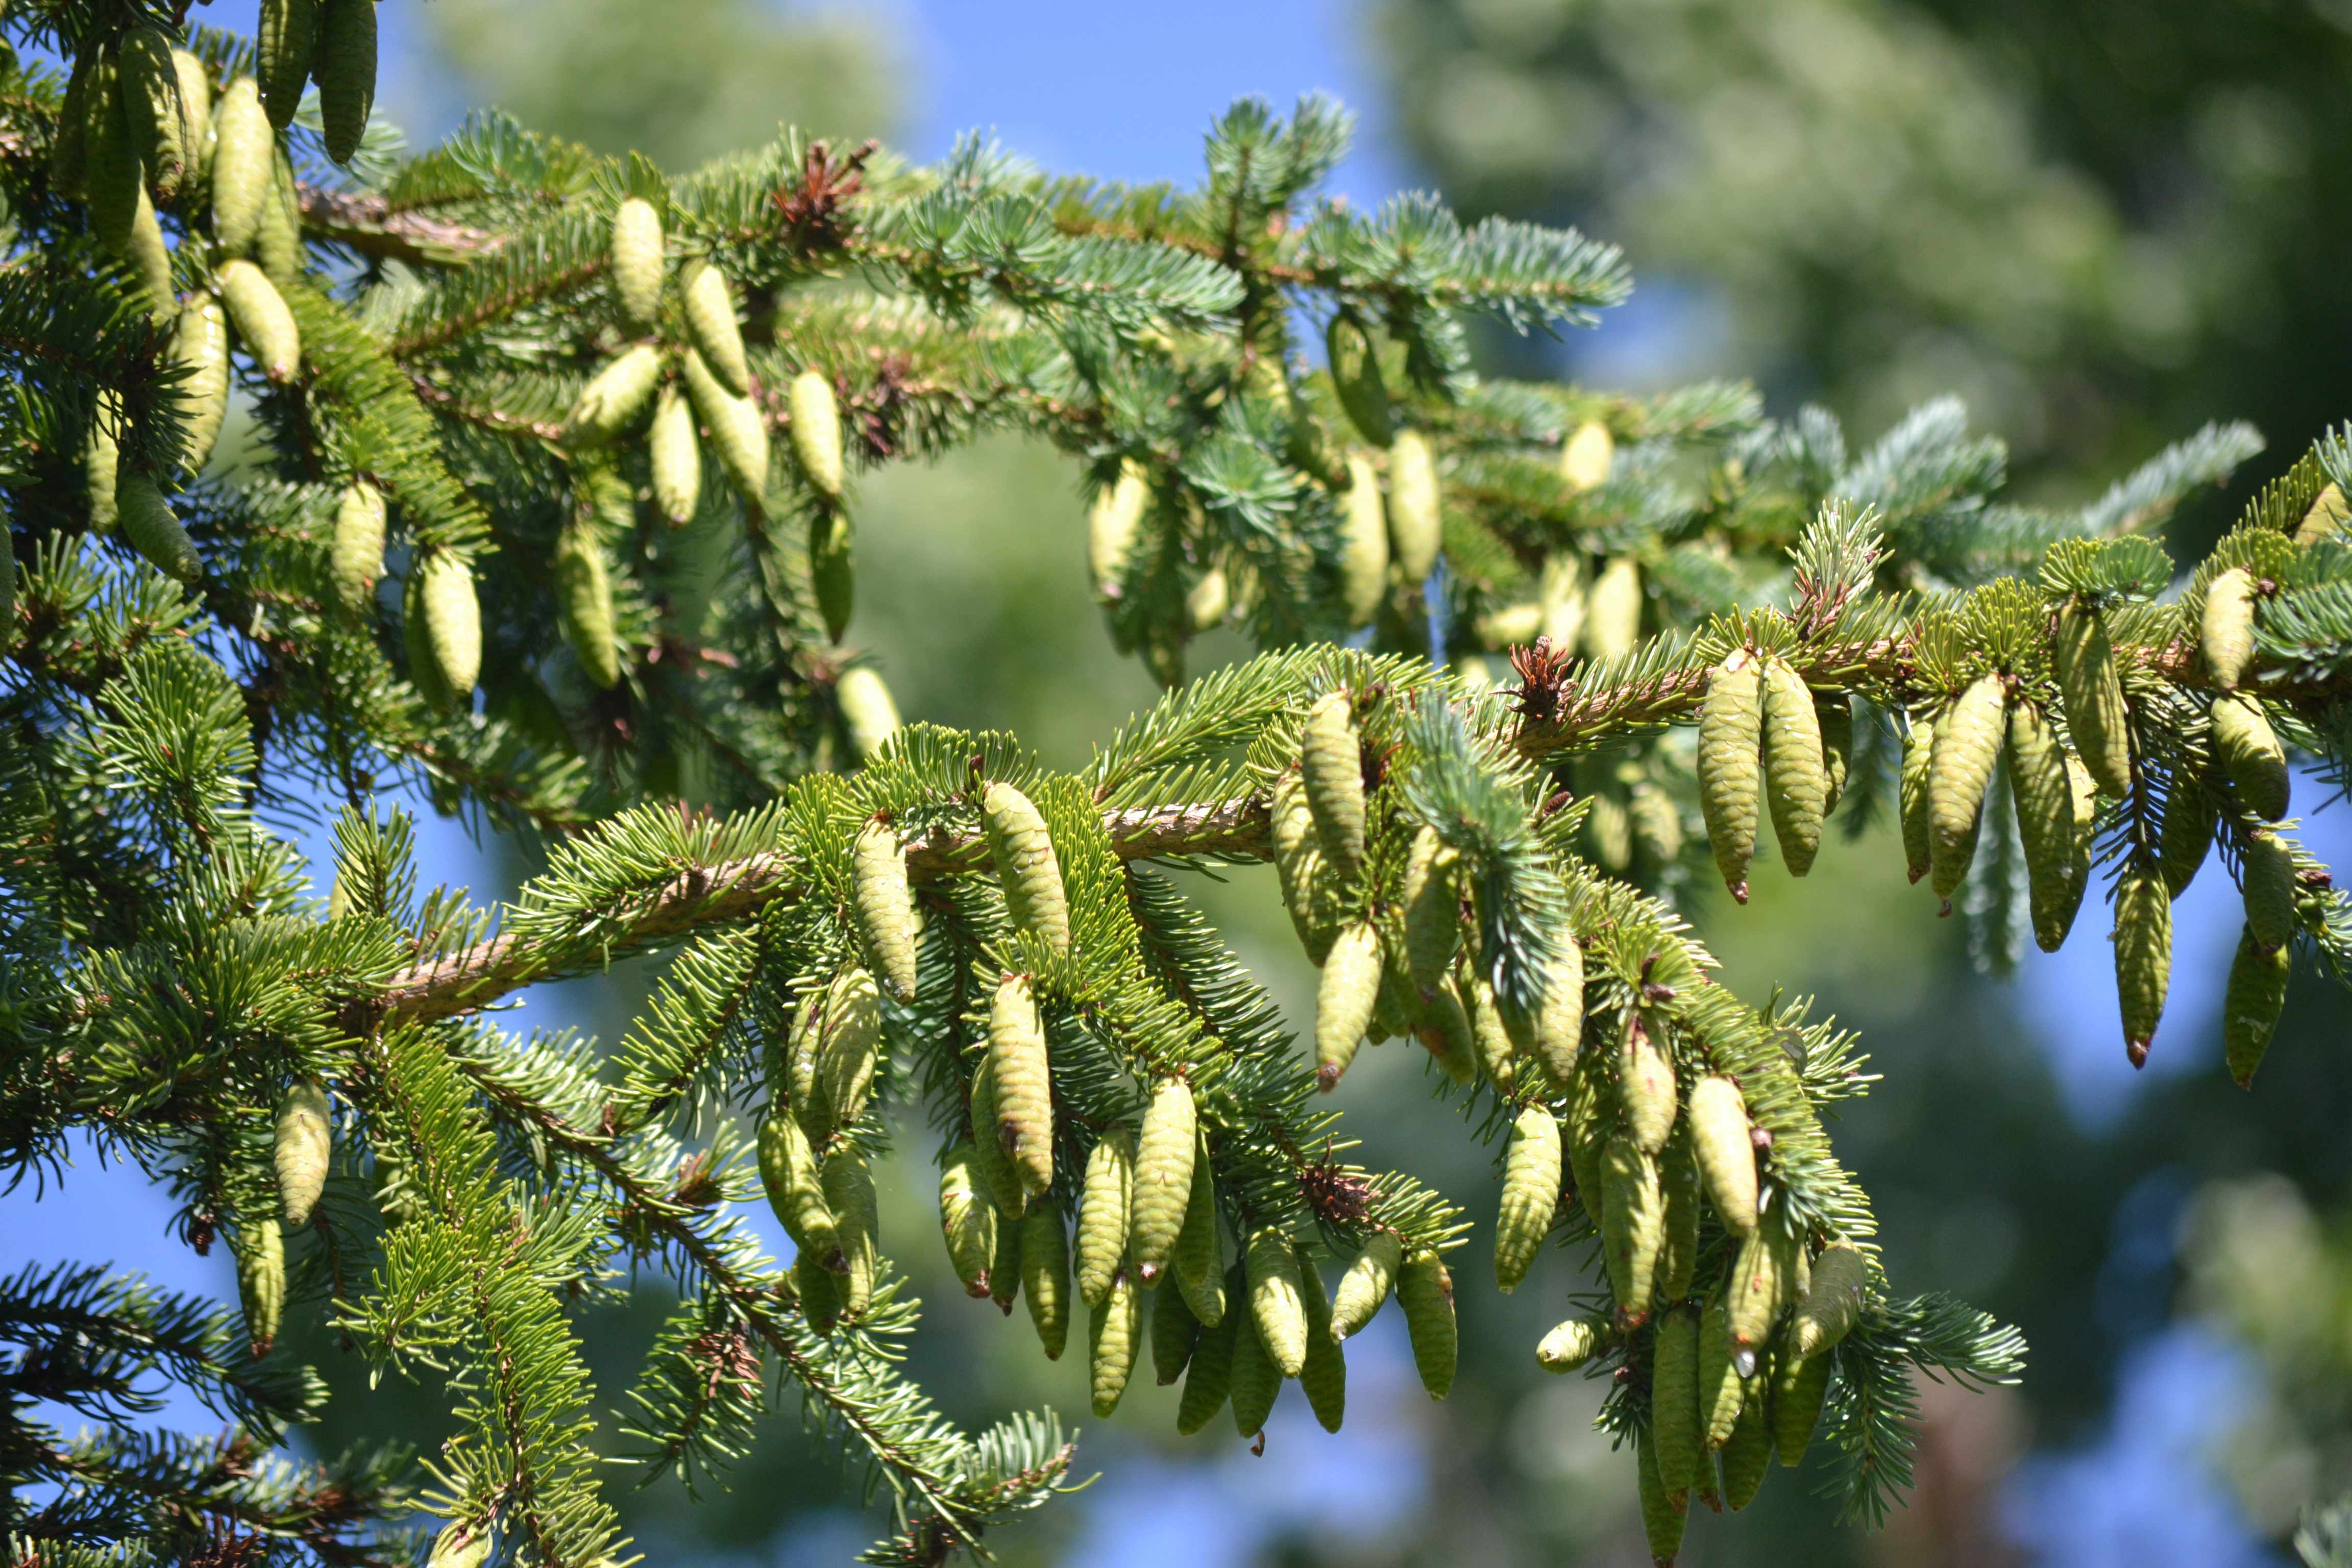 New cones on a white spruce tree branch during a large mast-seeding event (Photo: LaMontagne).